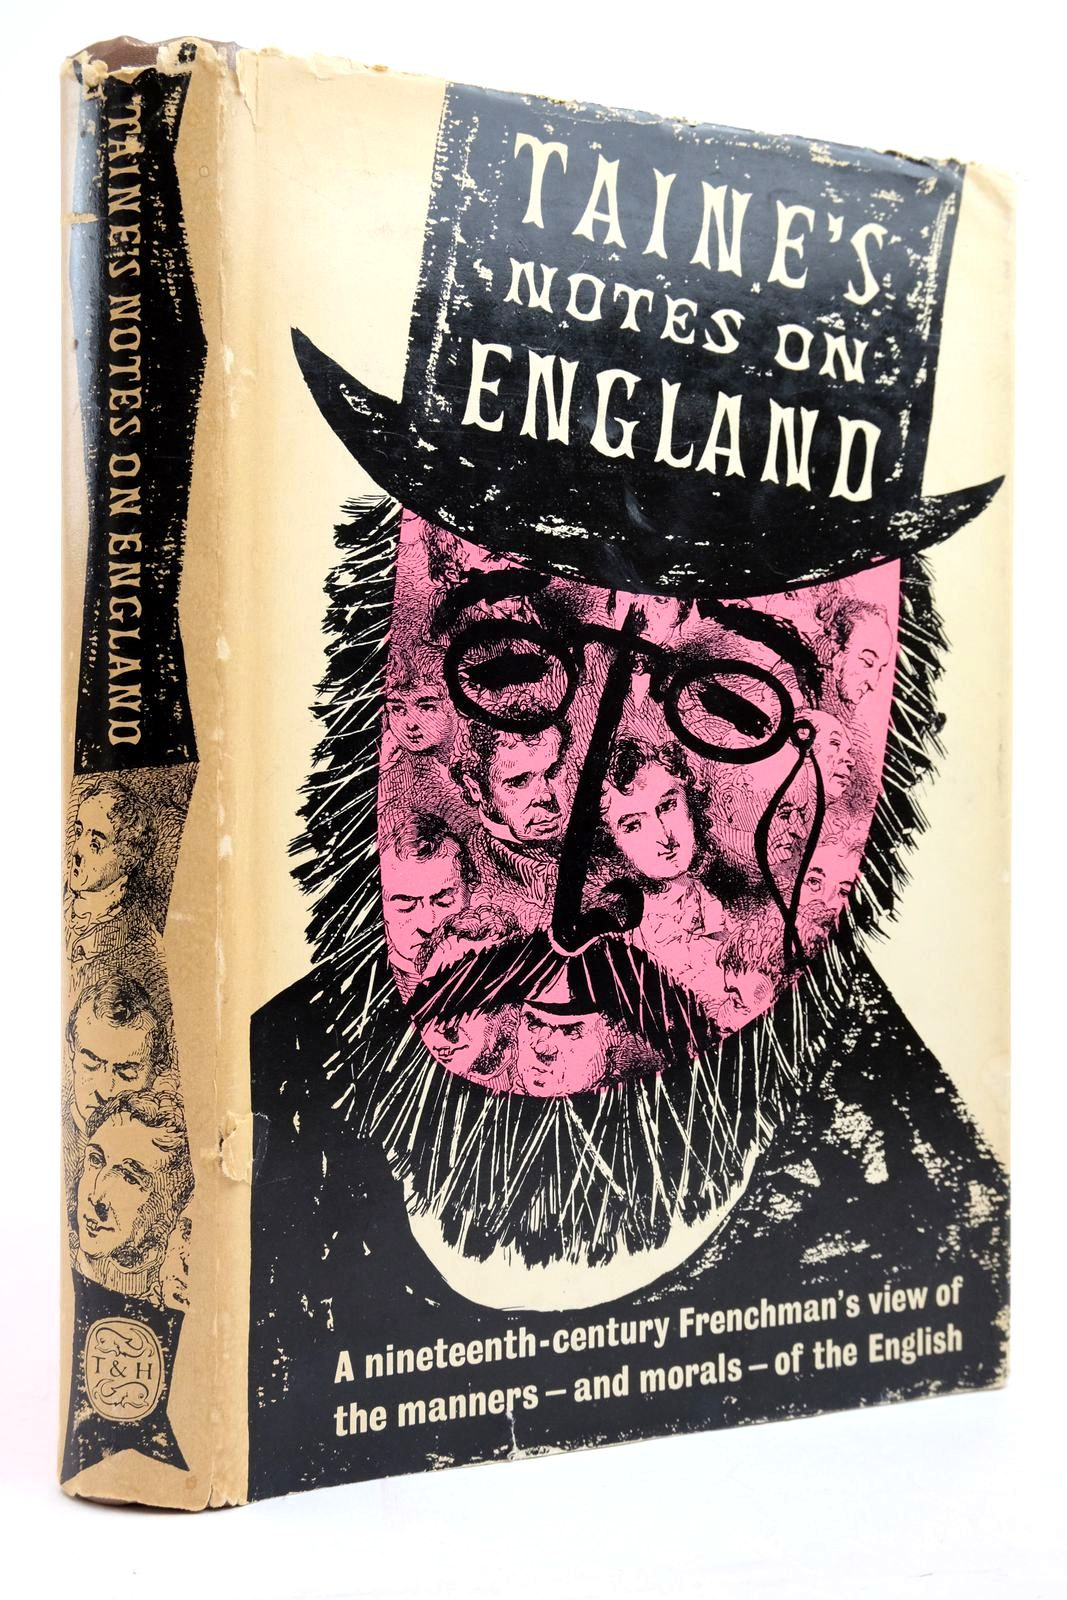 Photo of TAINE'S NOTES ON ENGLAND- Stock Number: 2135189